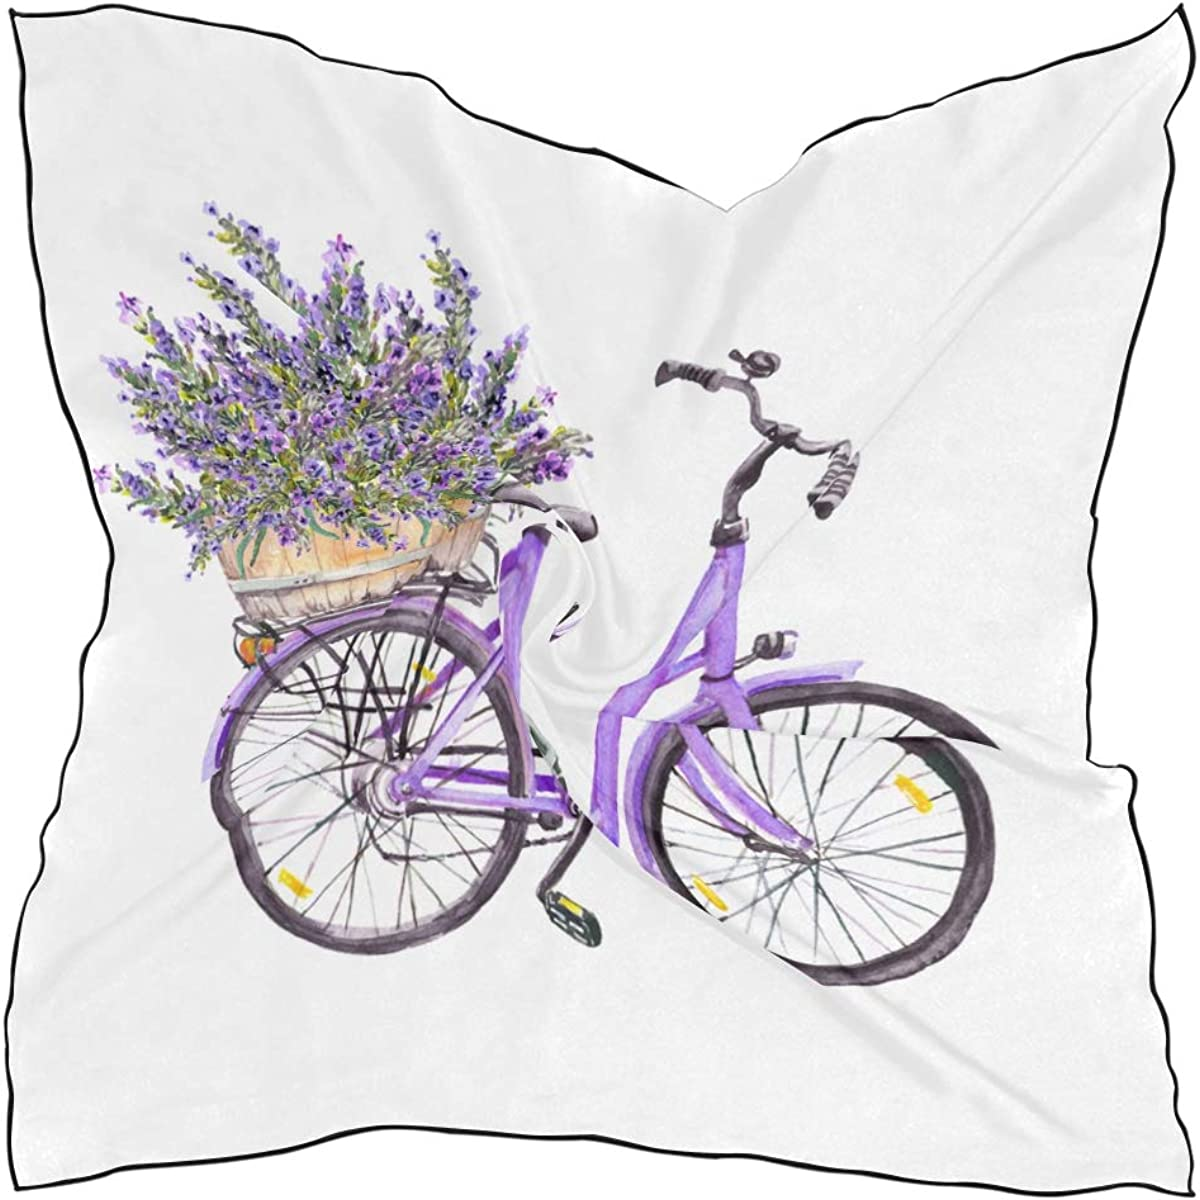 Women's Soft Polyester Silk Square Scarf Flower Spring Nature Bicycle Romantic Sen Mood Hand-painted Fashion Print Head & Hair Scarf Neckerchief Accessory-23.6x23.6 Inch